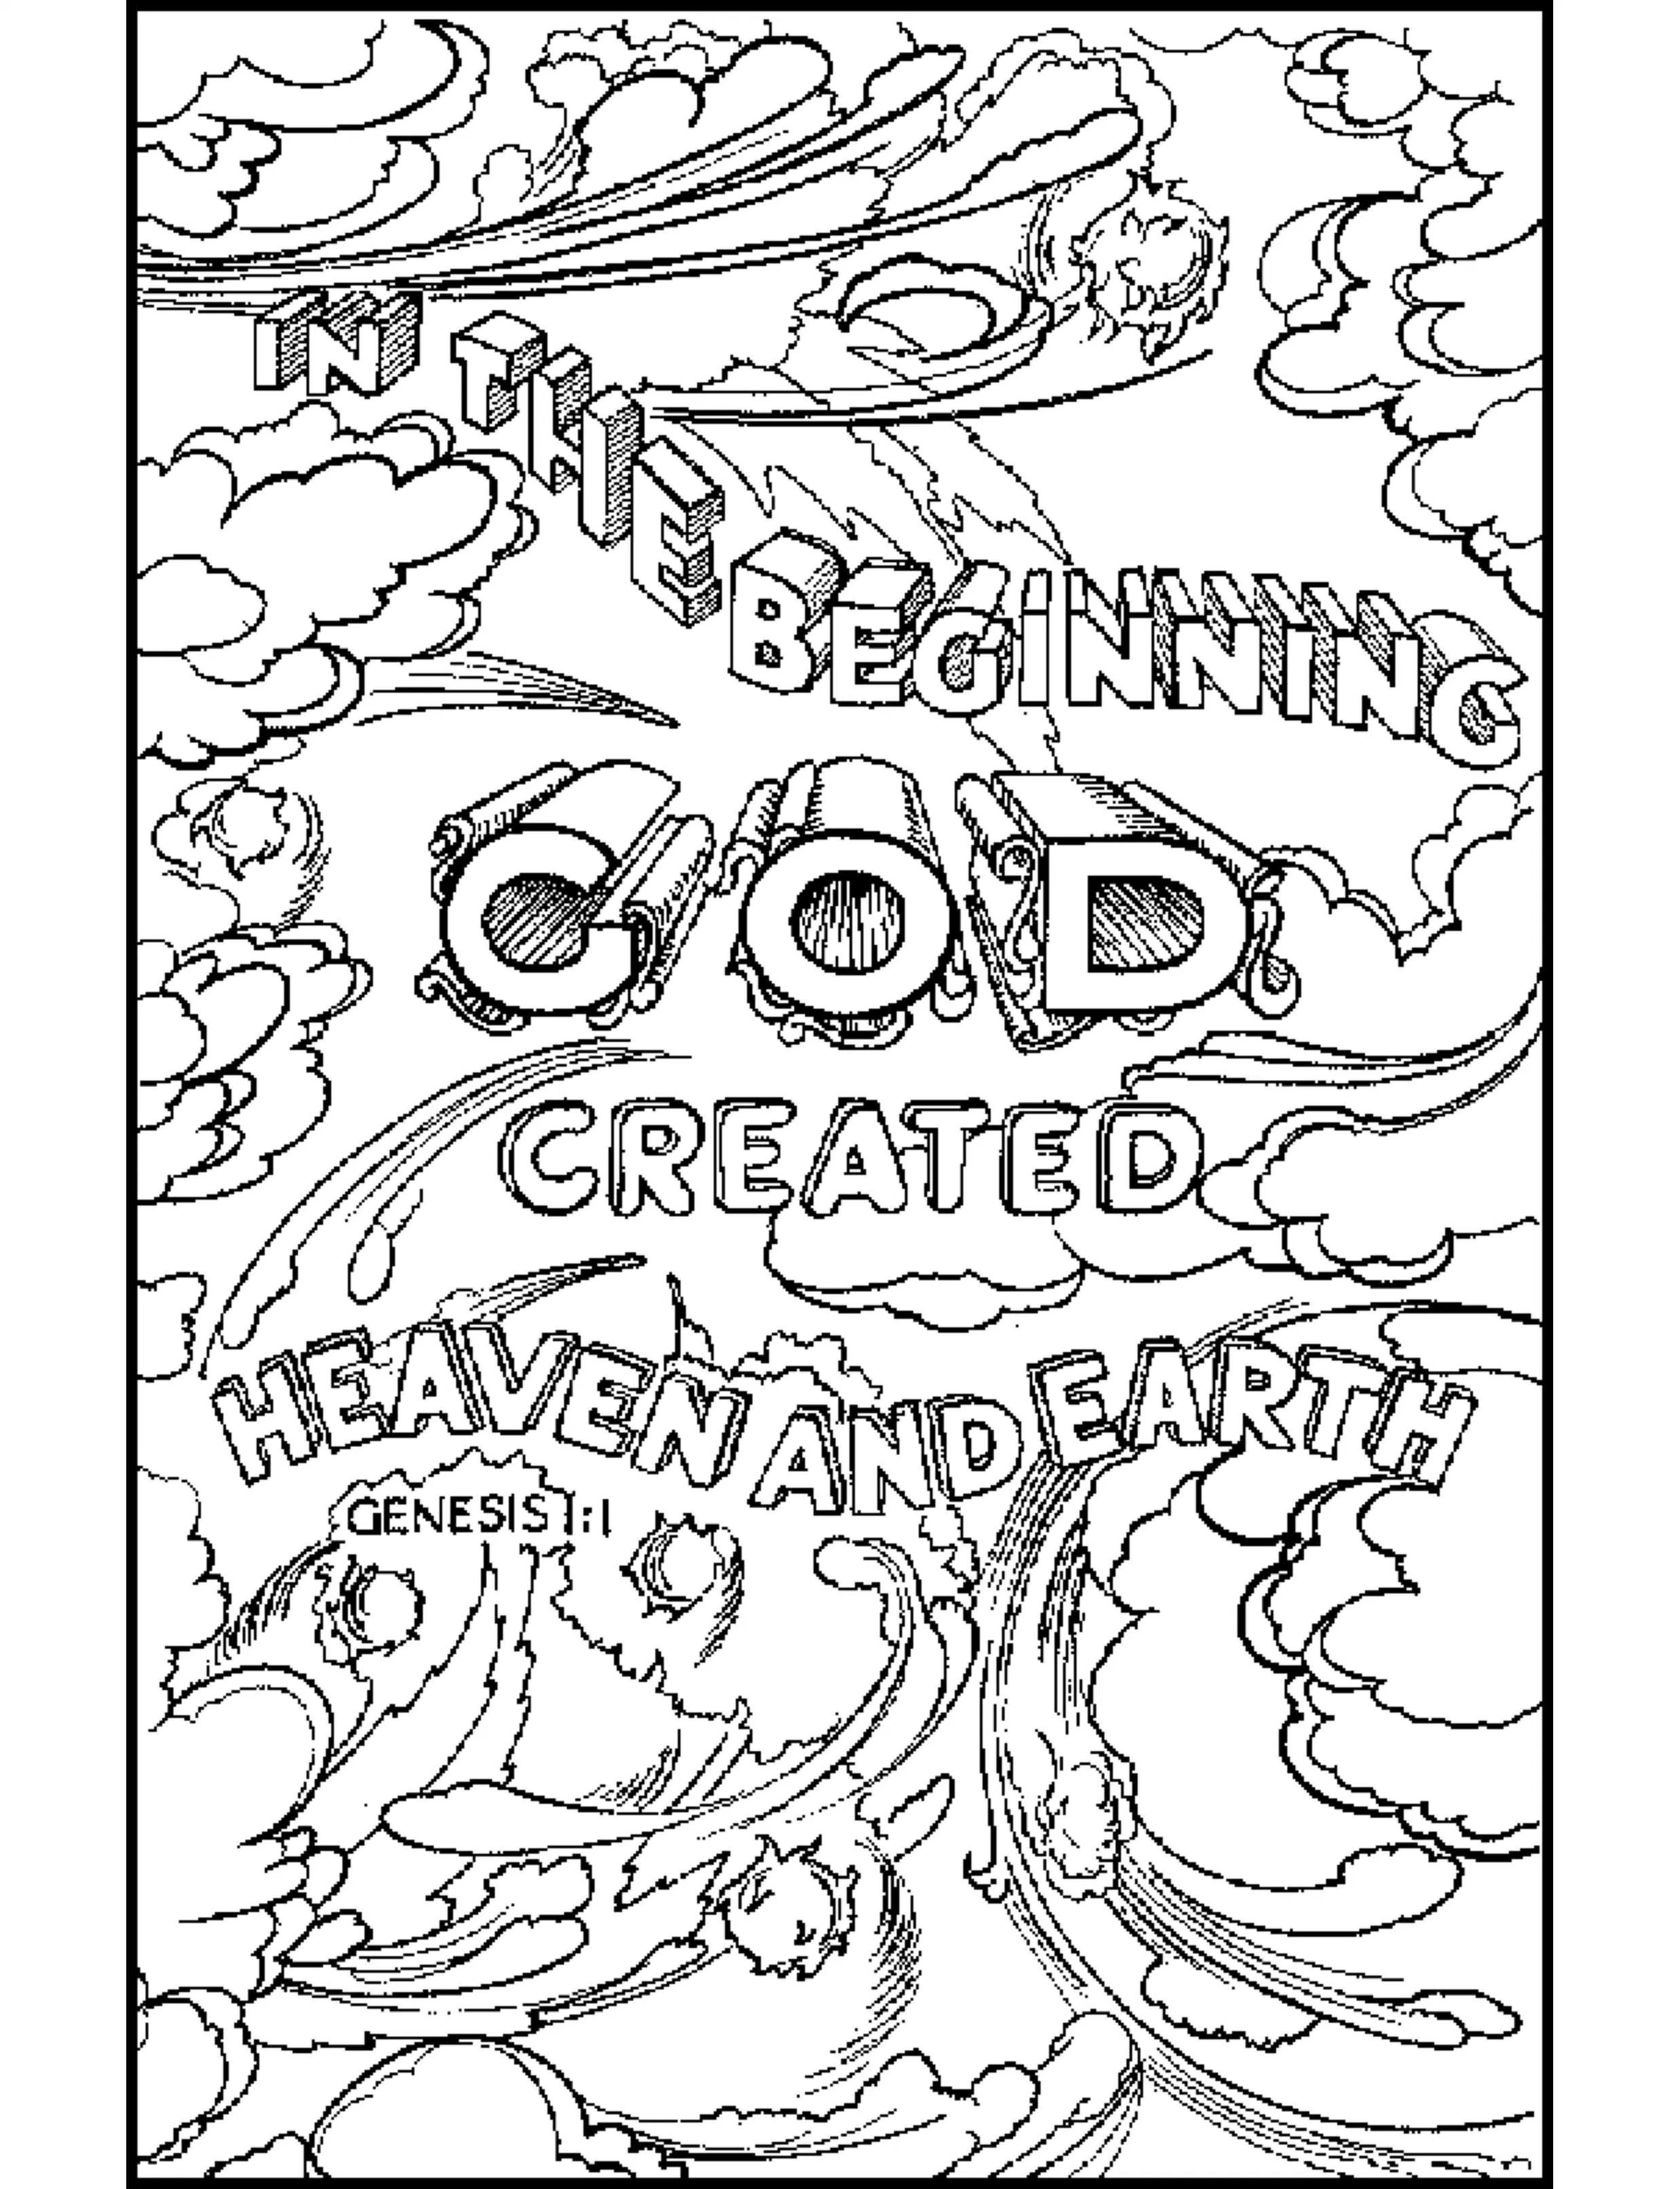 Coloring ~ Bible Coloring Sheets And Pictures Free Printables - Free Printable Sunday School Coloring Pages